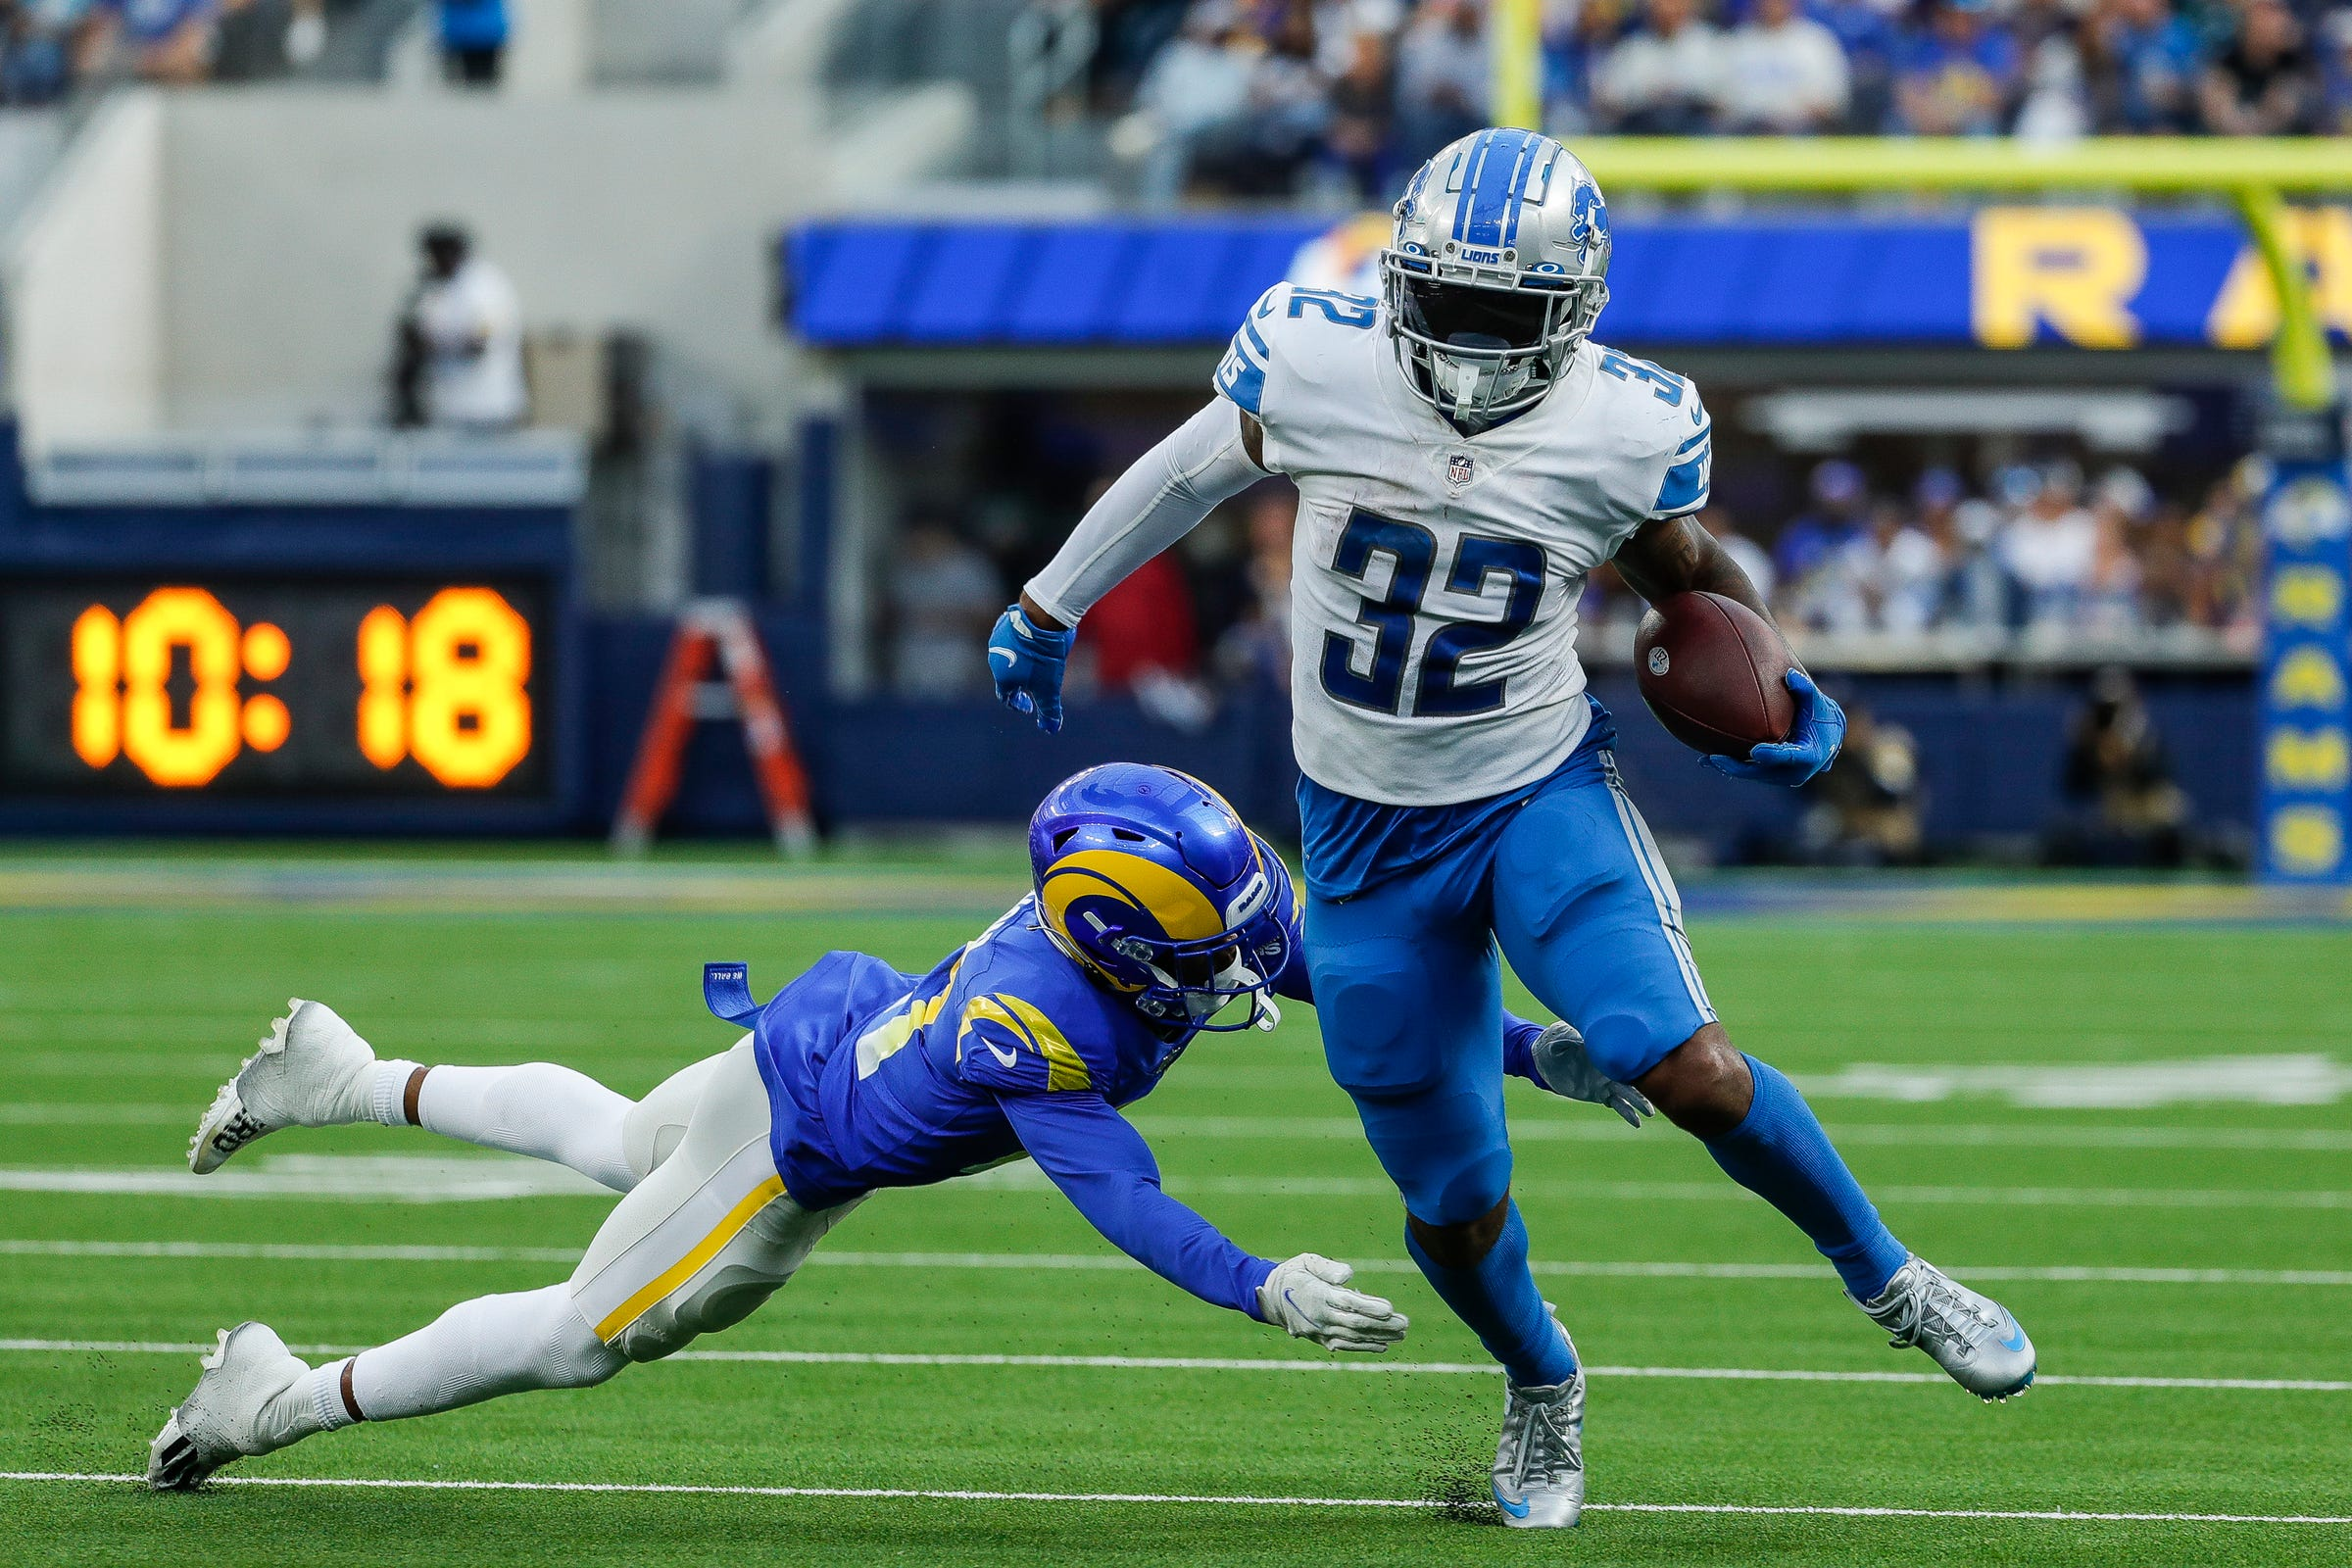 Why Detroit Lions' D'Andre Swift is 'a stud, can't get him the ball enough'